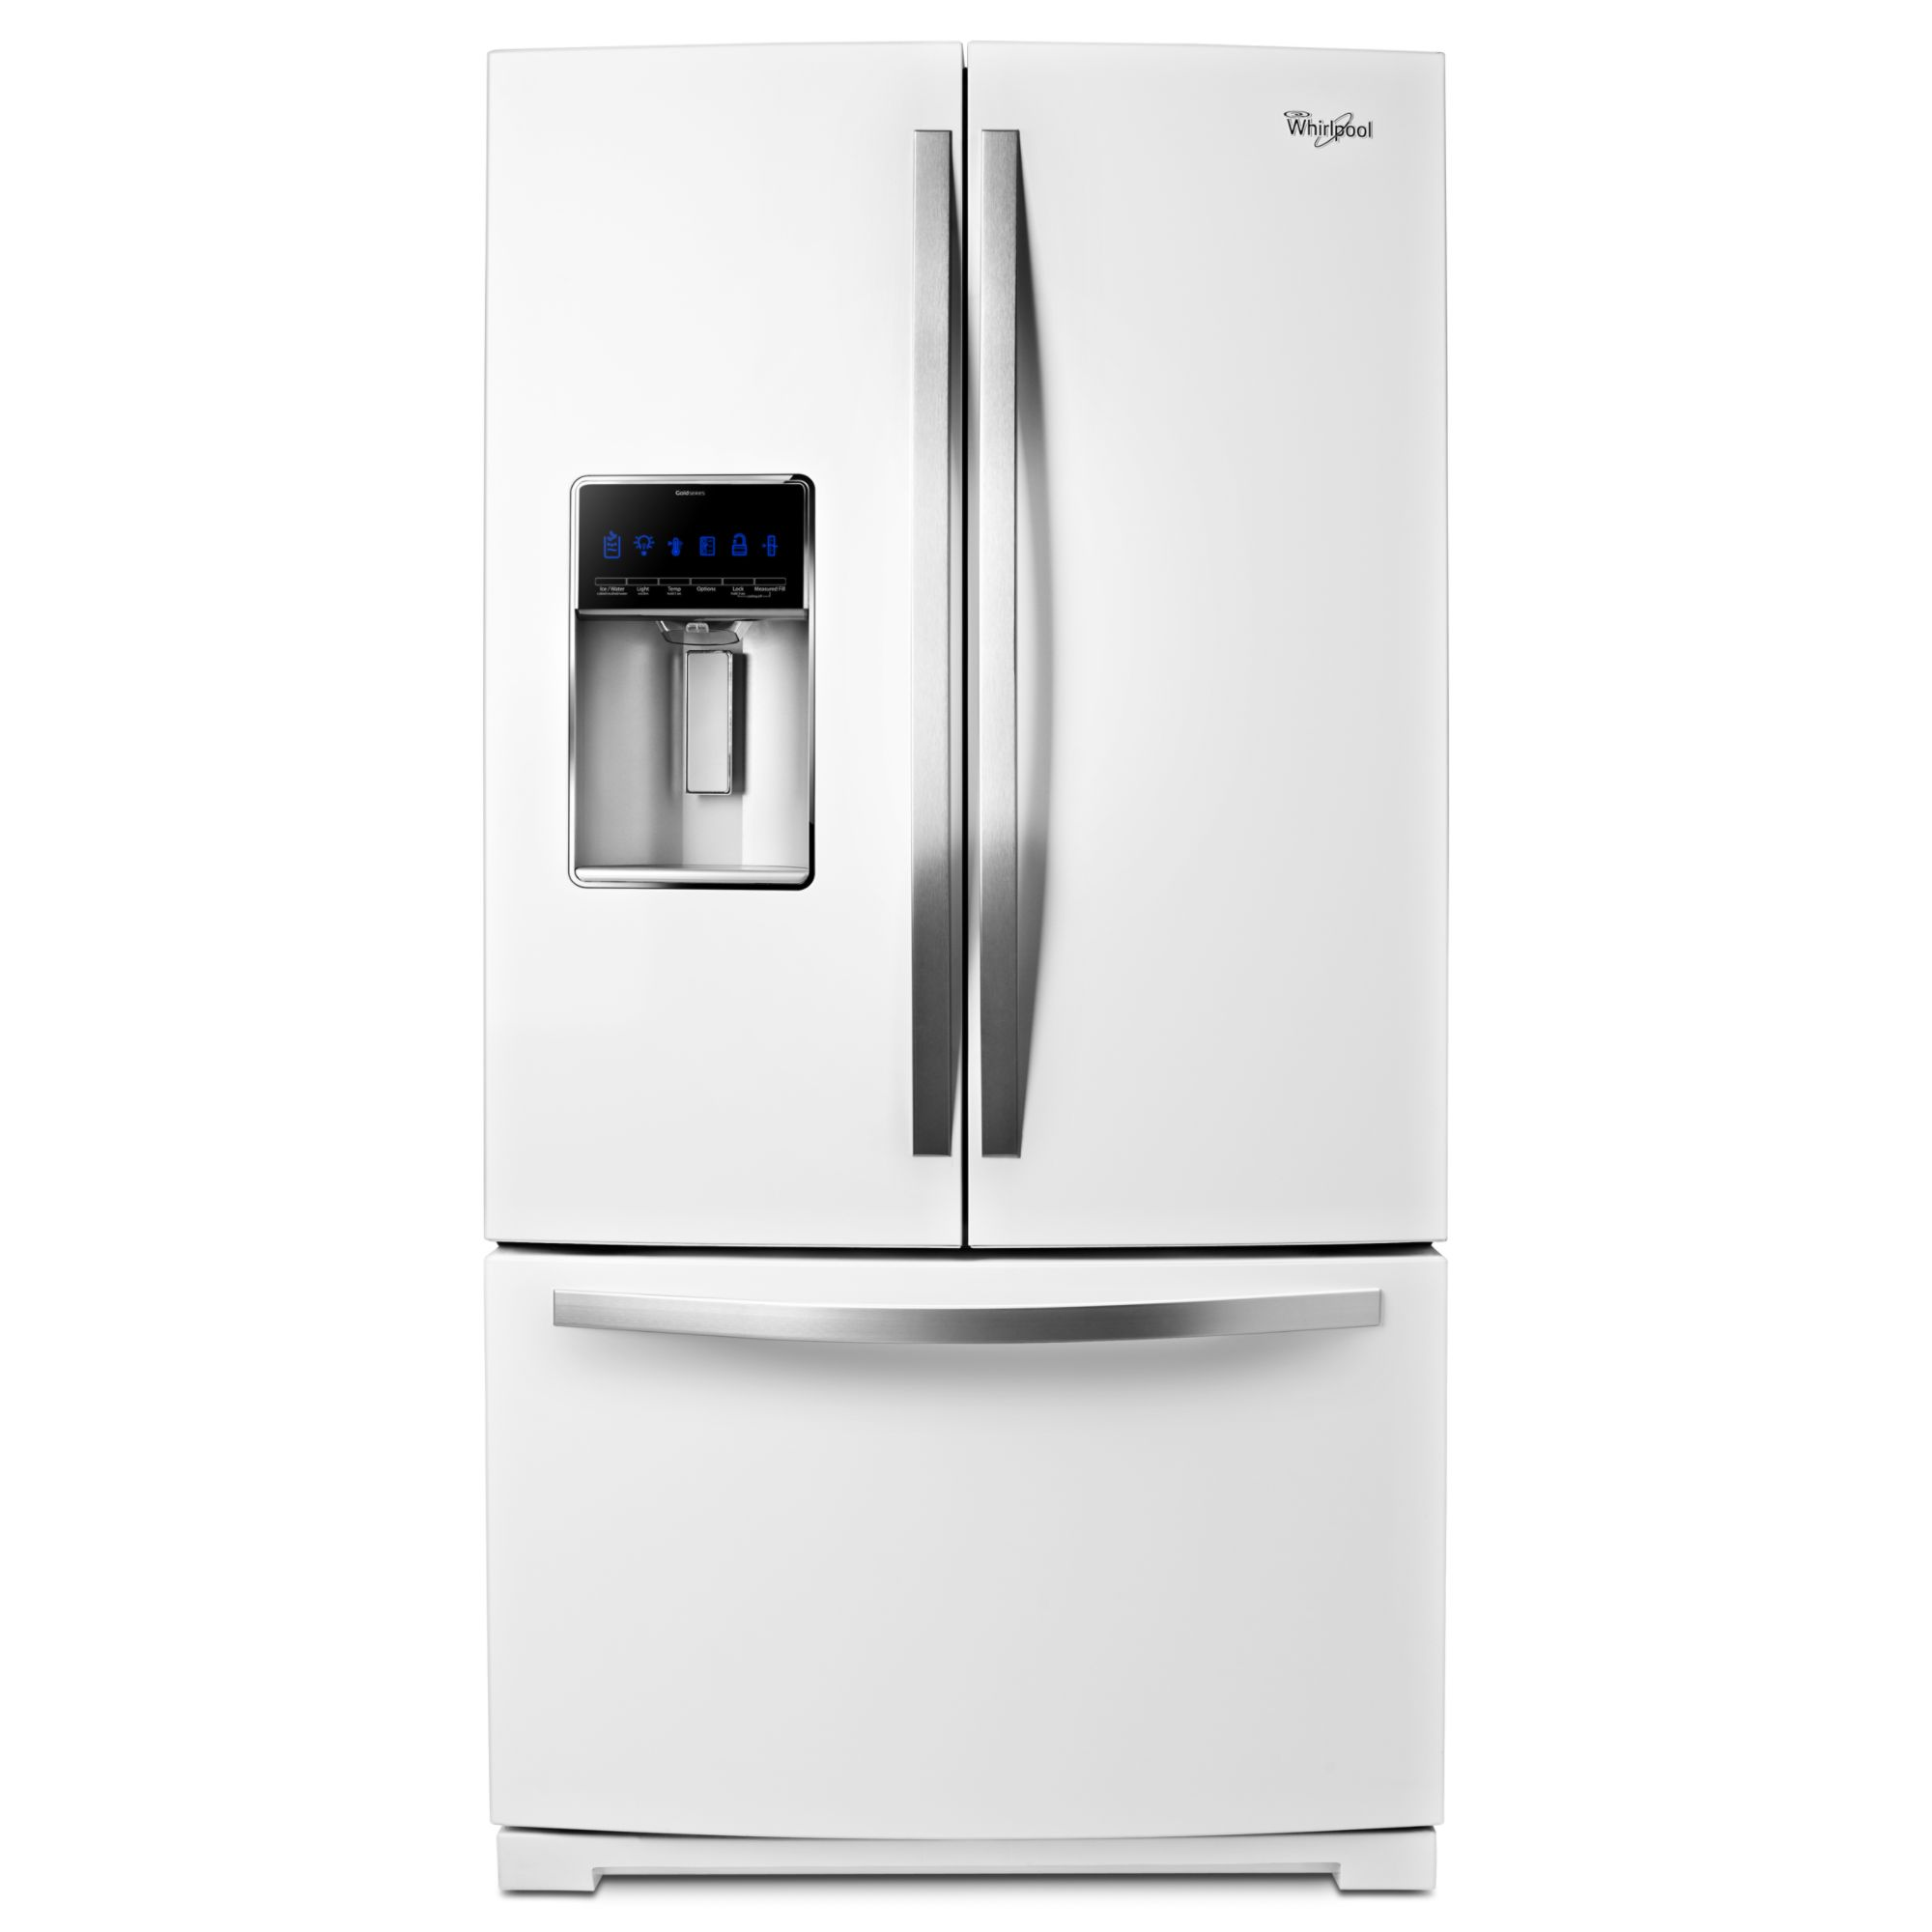 Whirlpool gold 27 cu ft french door refrigerator white ice